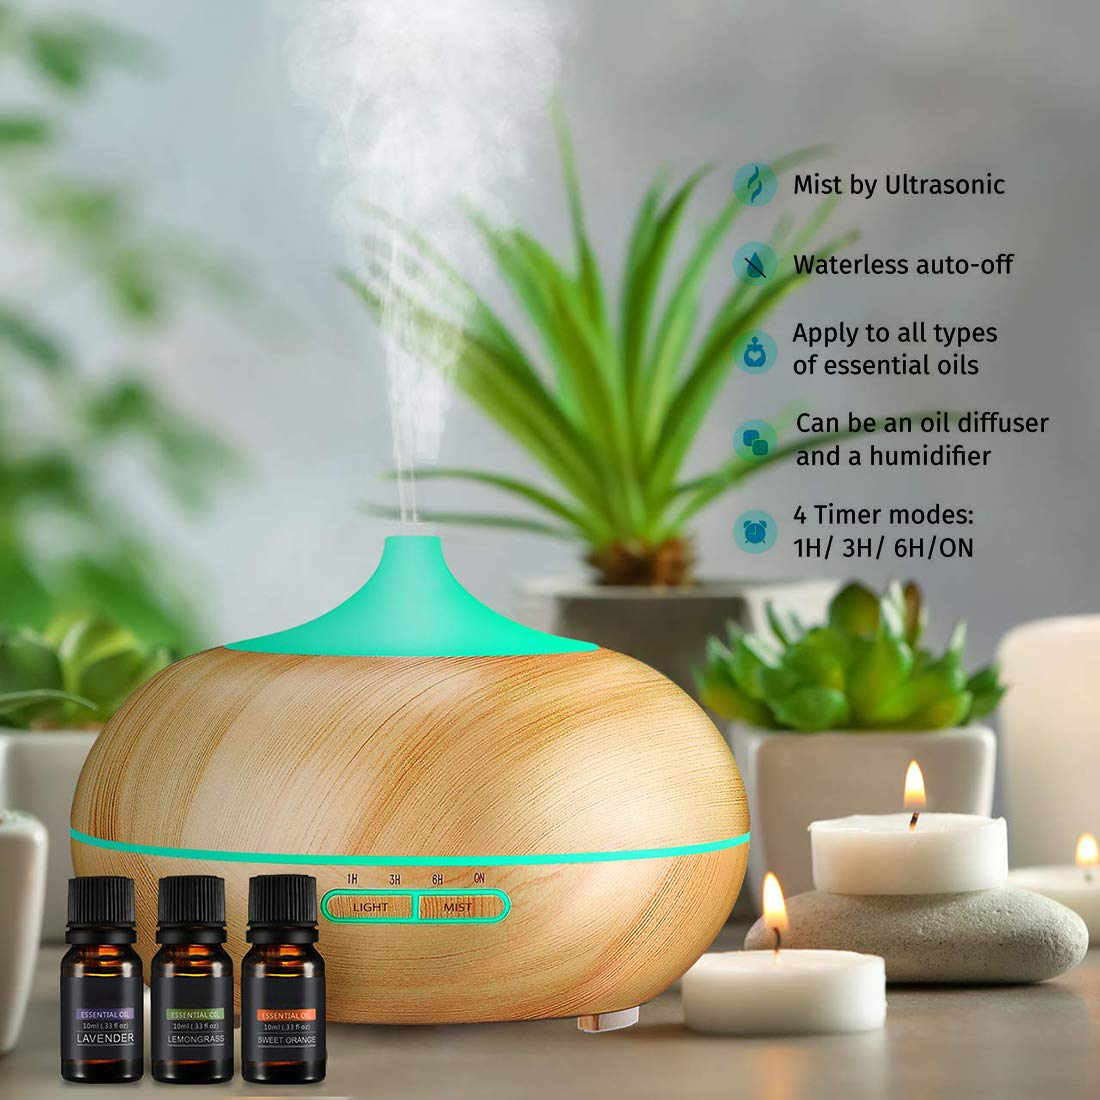 Aromatherapy Diffuser Aroma Essential Oil Diffuser 300ml Air Fragrance Ultrasonic Cool Mist Humidifier 7-Color LED Lights & 4 Timer Settings, Waterless Auto Shut-Off (Brown)